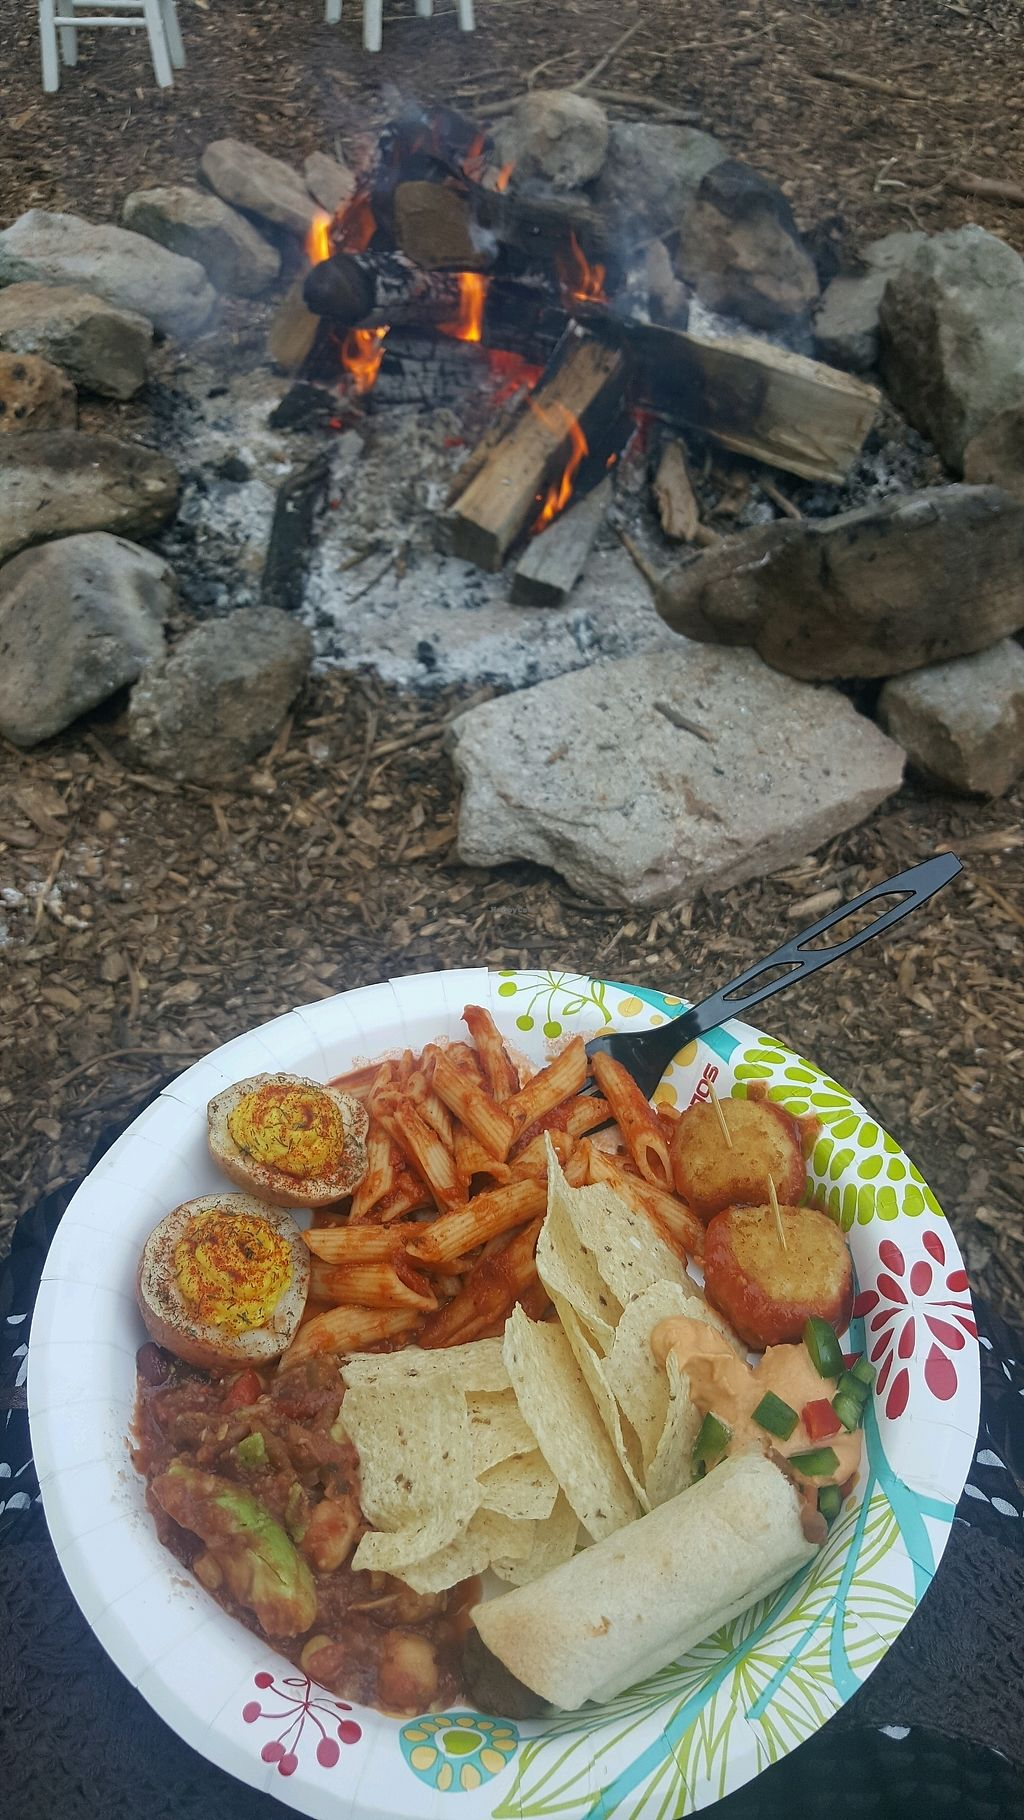 "Photo of Vahimsa  by <a href=""/members/profile/beccajane"">beccajane</a> <br/>vegan dinner and fire <br/> September 22, 2017  - <a href='/contact/abuse/image/101491/307280'>Report</a>"